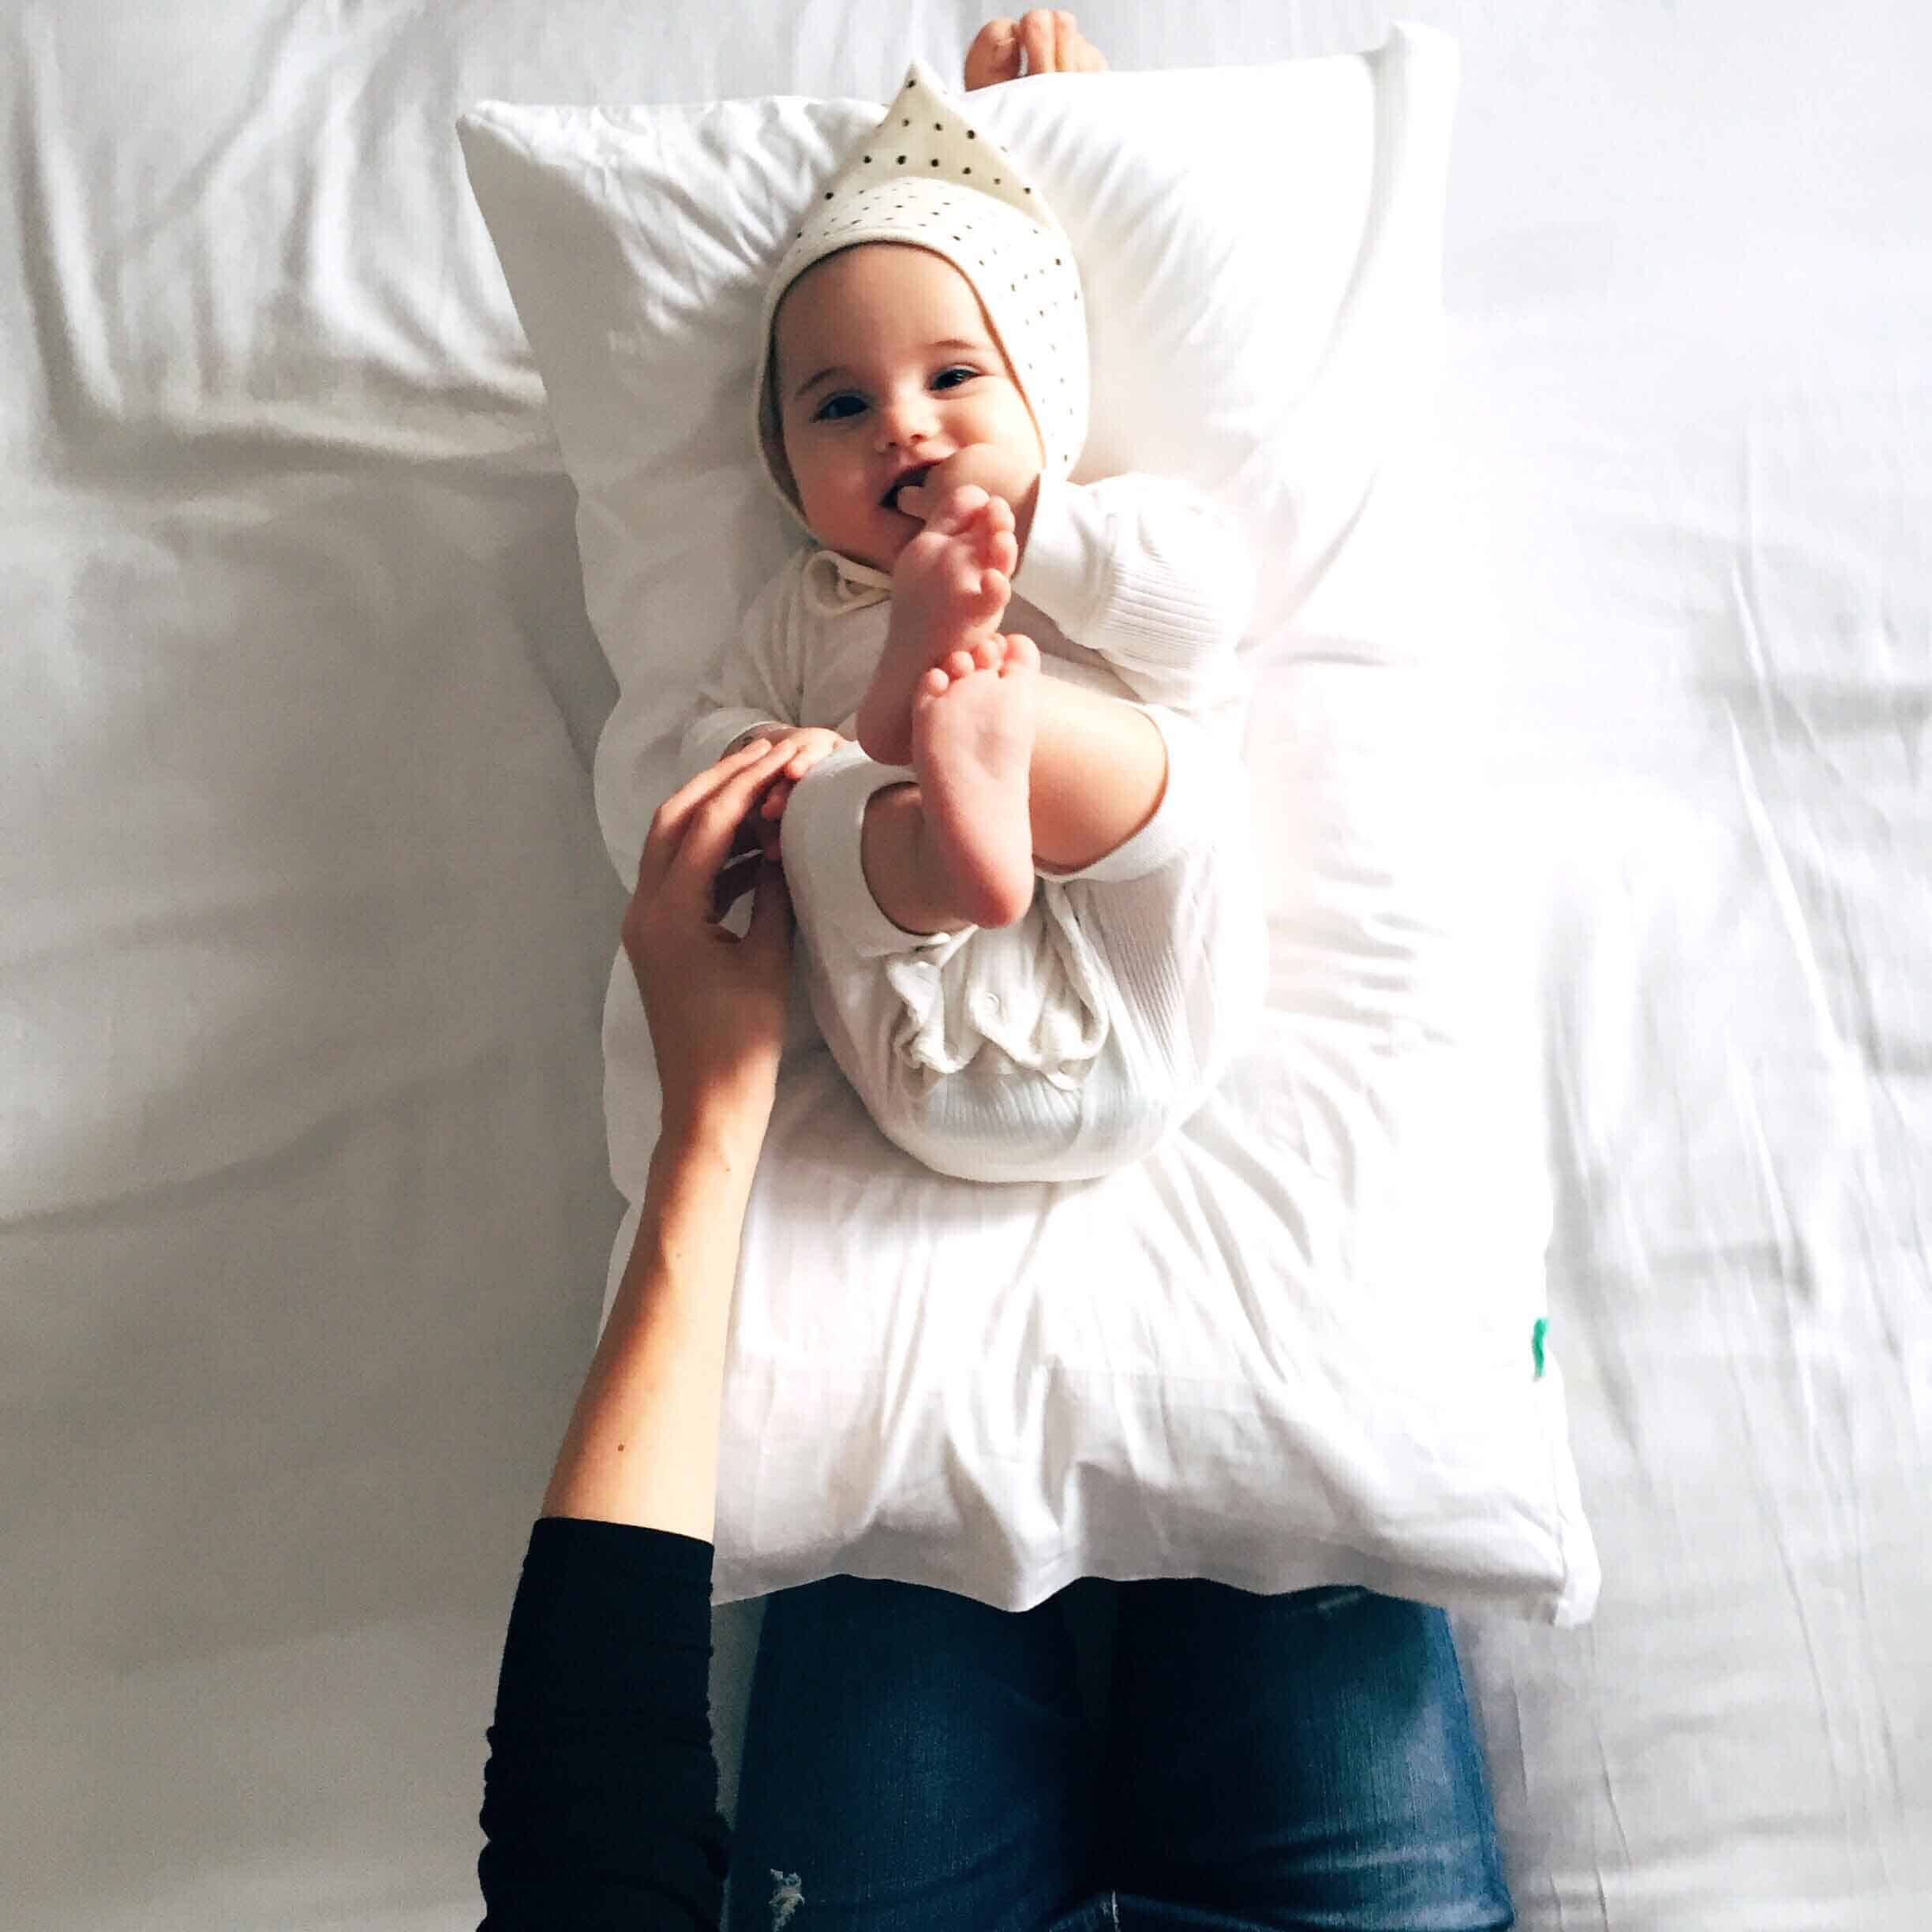 Pumping breastmilk is a skill and takes a little time to master. It can be difficult if you're not quite sure what you're doing or if you haven't had the right support. Here's some tips for how you can make pumping breastmilk easier (and more effective).